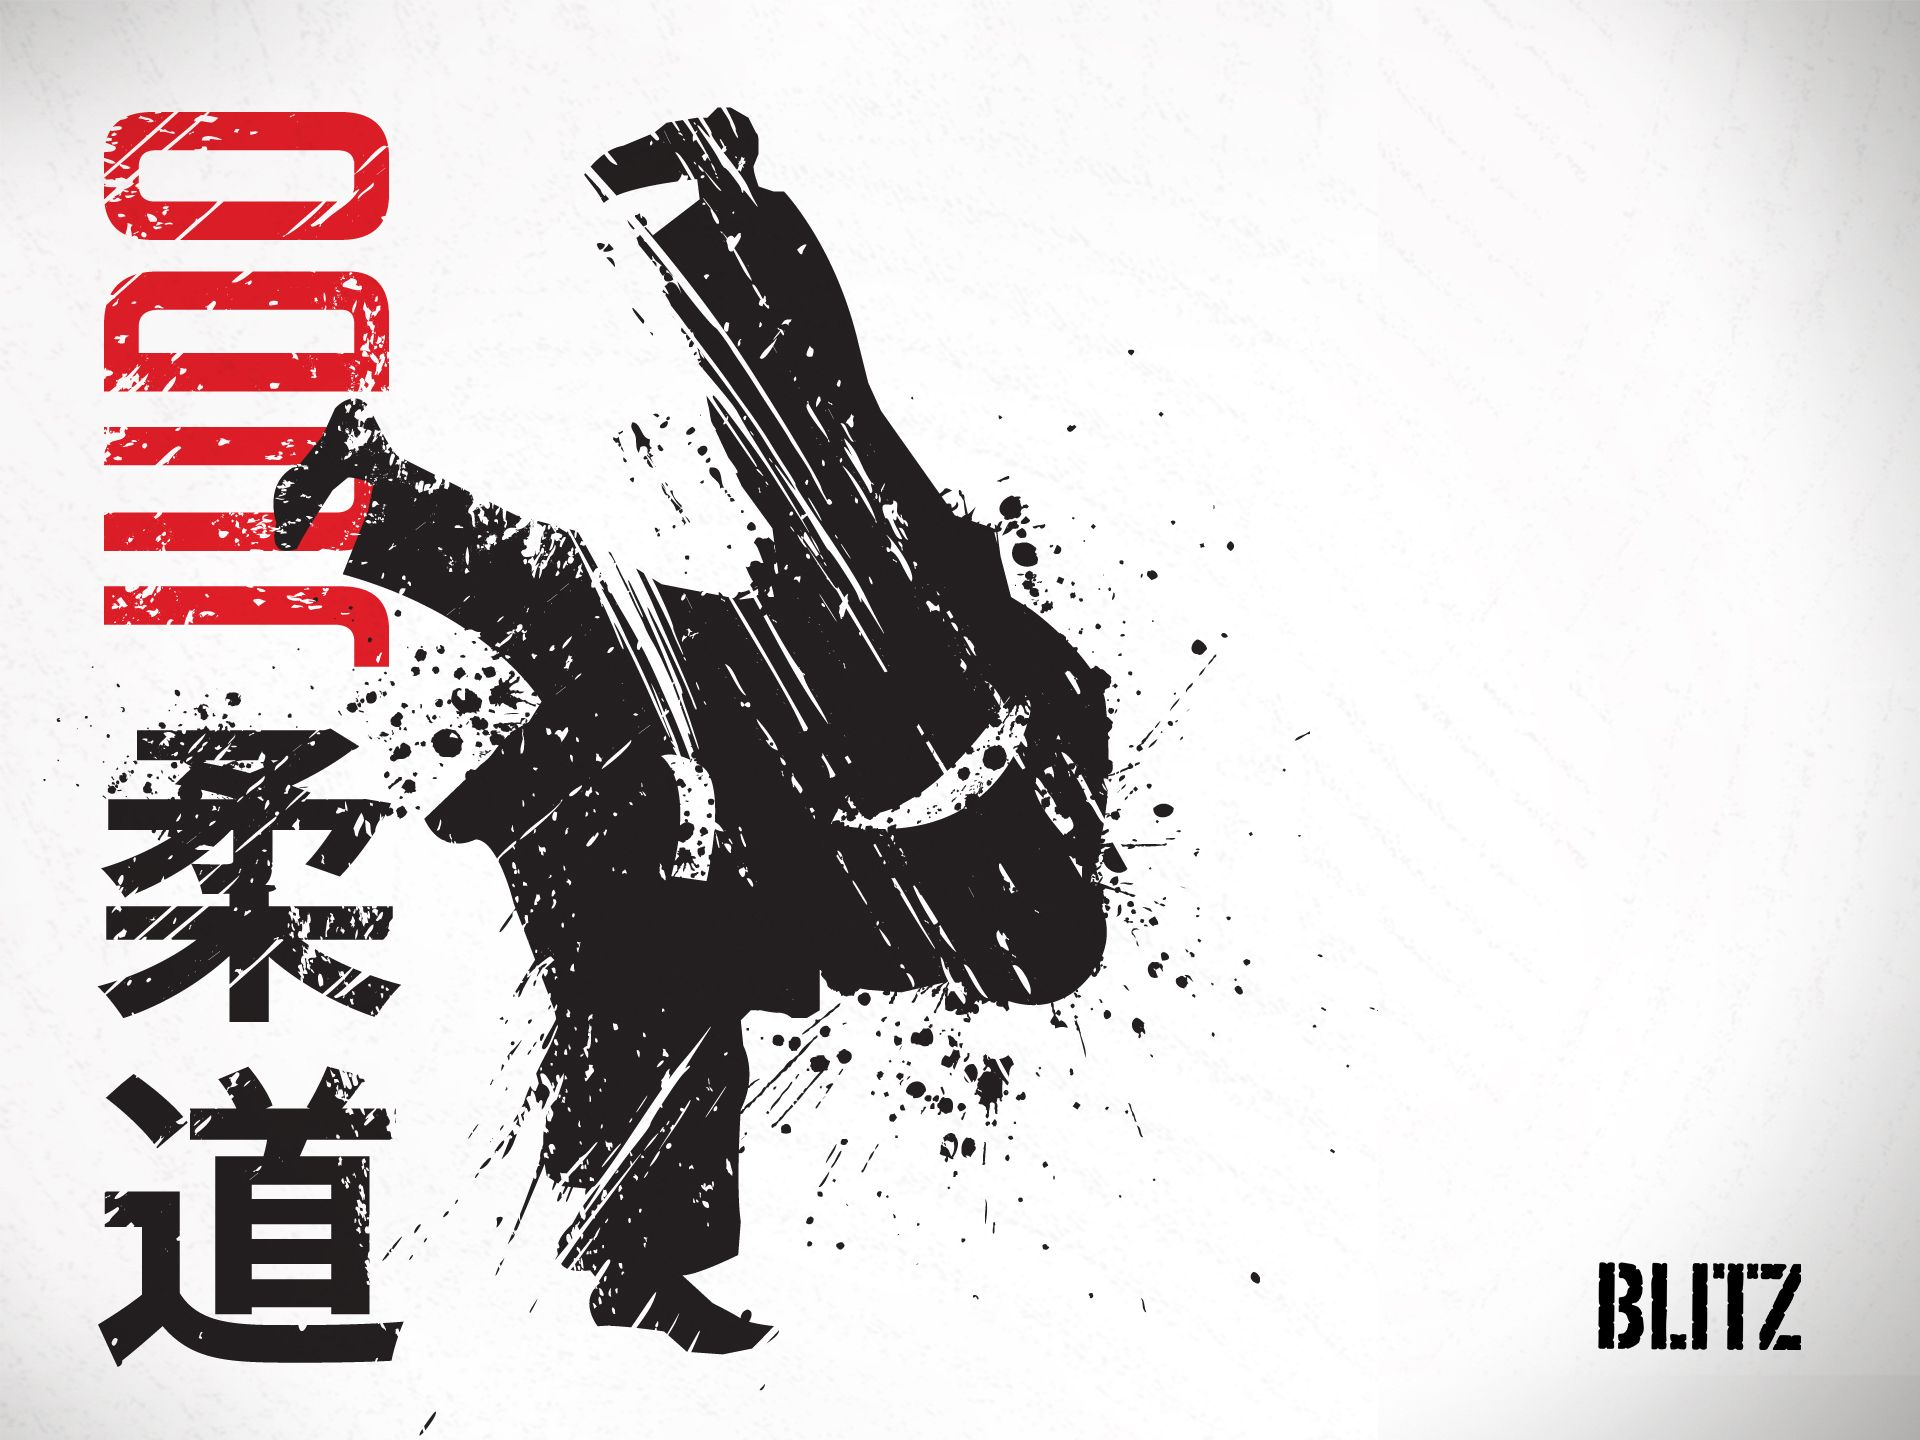 1920x1440 Blitz Judo Wallpaper (1920 x 1440) | T-Shirt Ideas | Pinterest ...